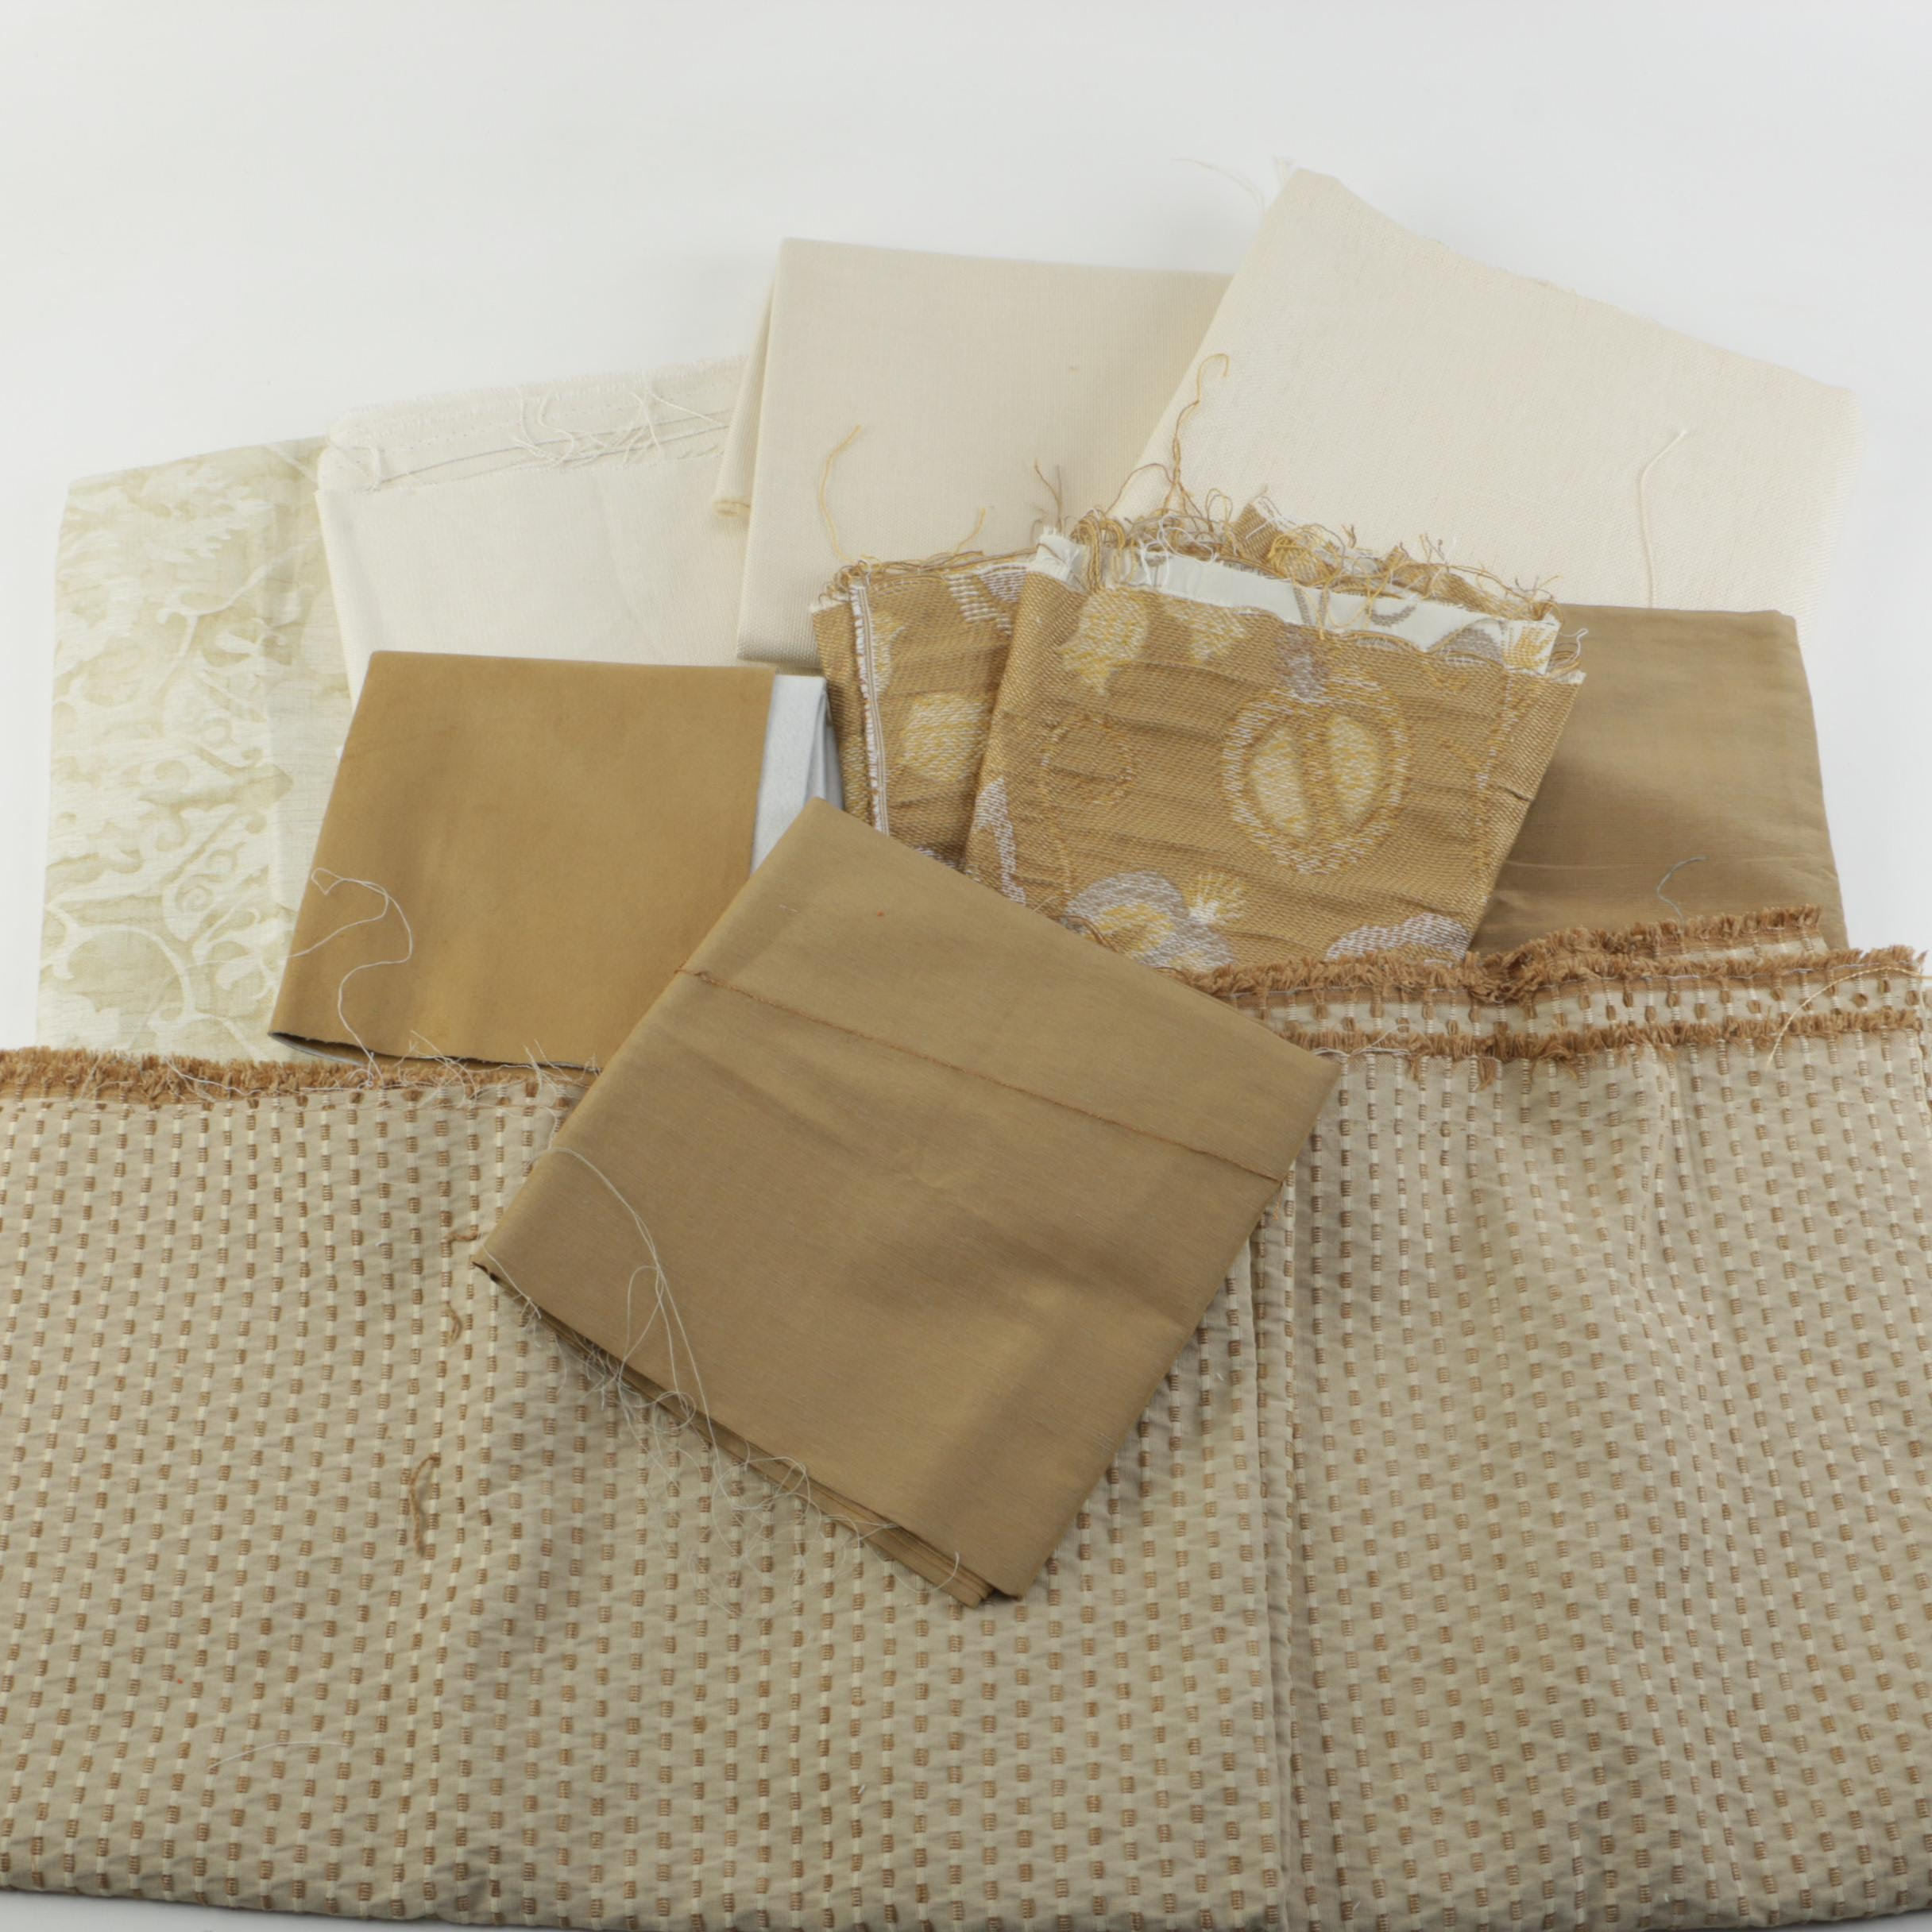 Neutral Toned Fabric Samples